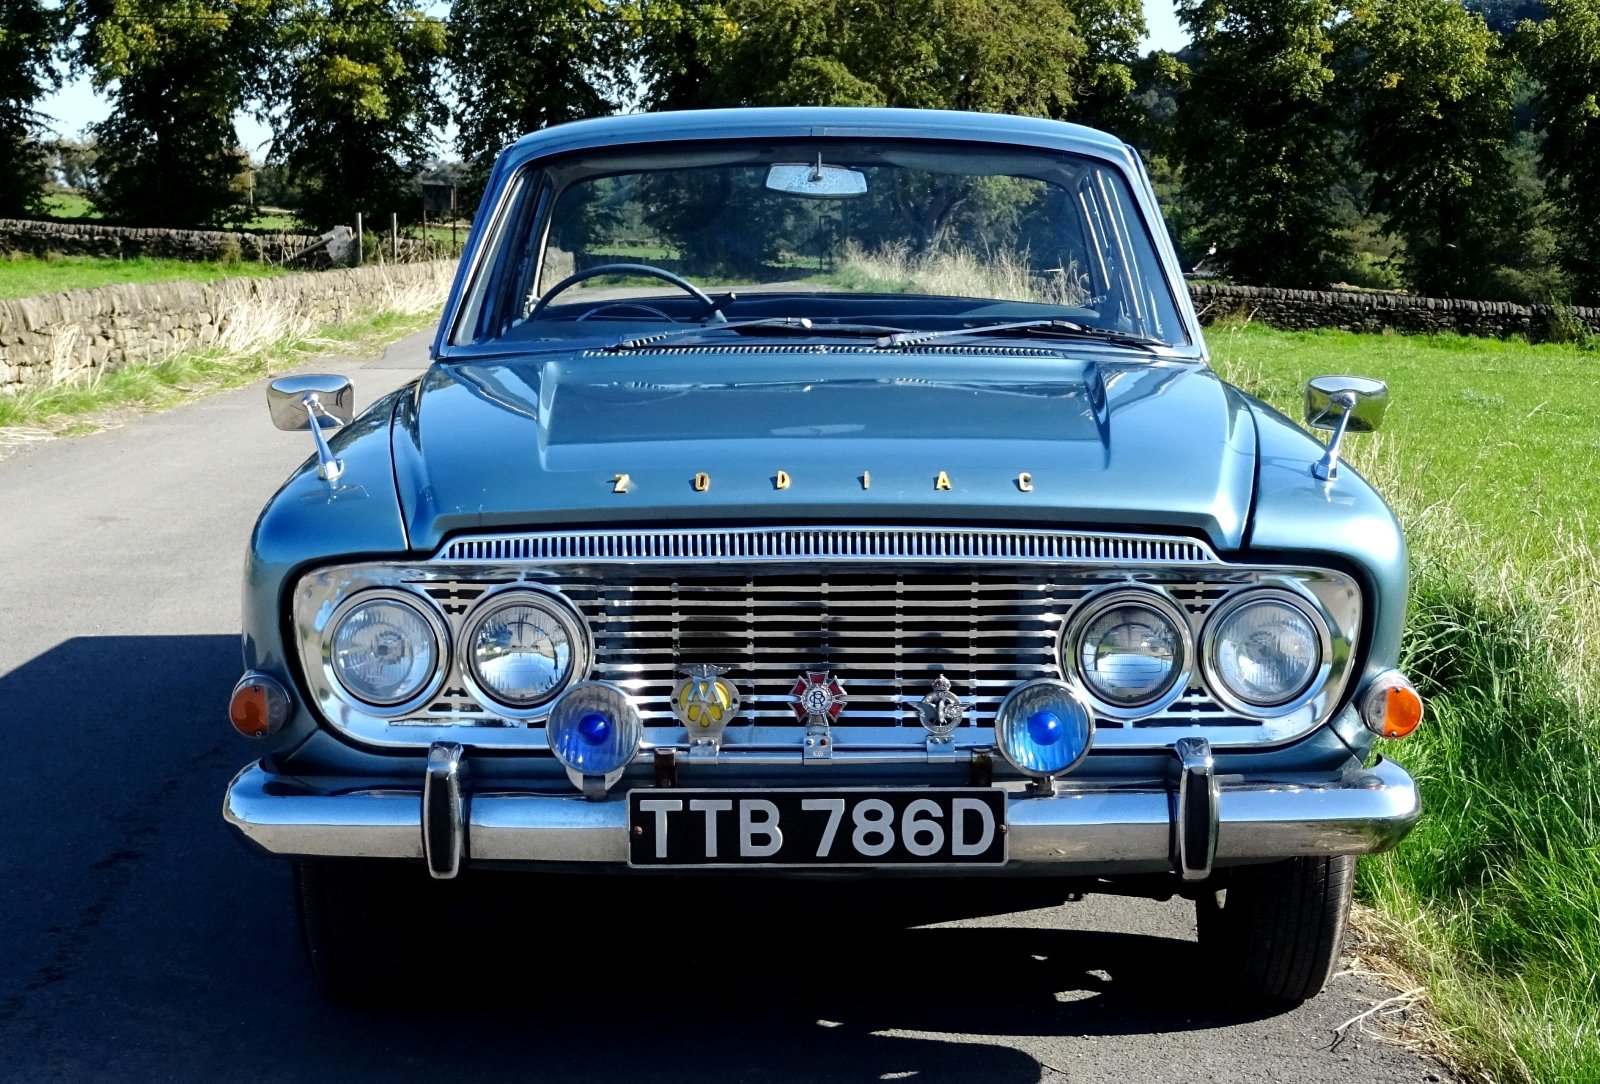 1966 FORD ZODIAC MK3 STUNNING DEEP BLUE PAINT & SPARKLING CHROME For Sale (picture 3 of 6)